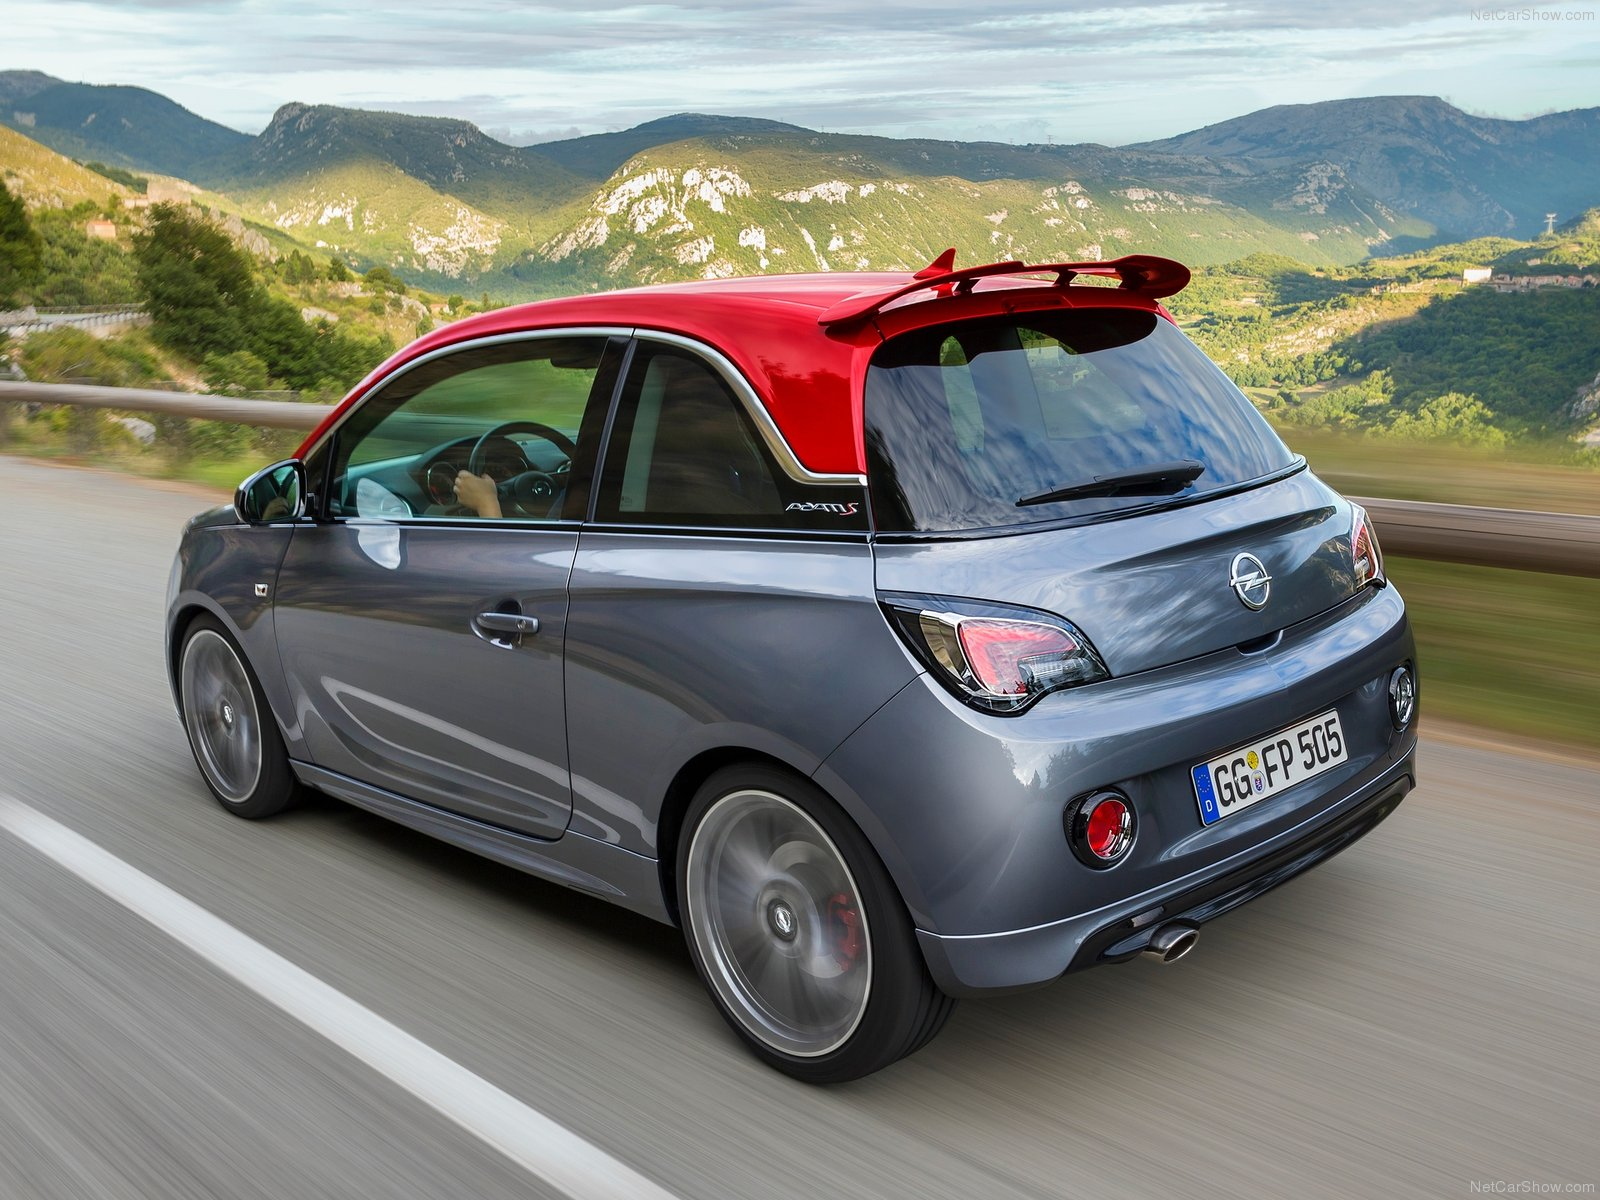 opel adam s picture 149929 opel photo gallery. Black Bedroom Furniture Sets. Home Design Ideas